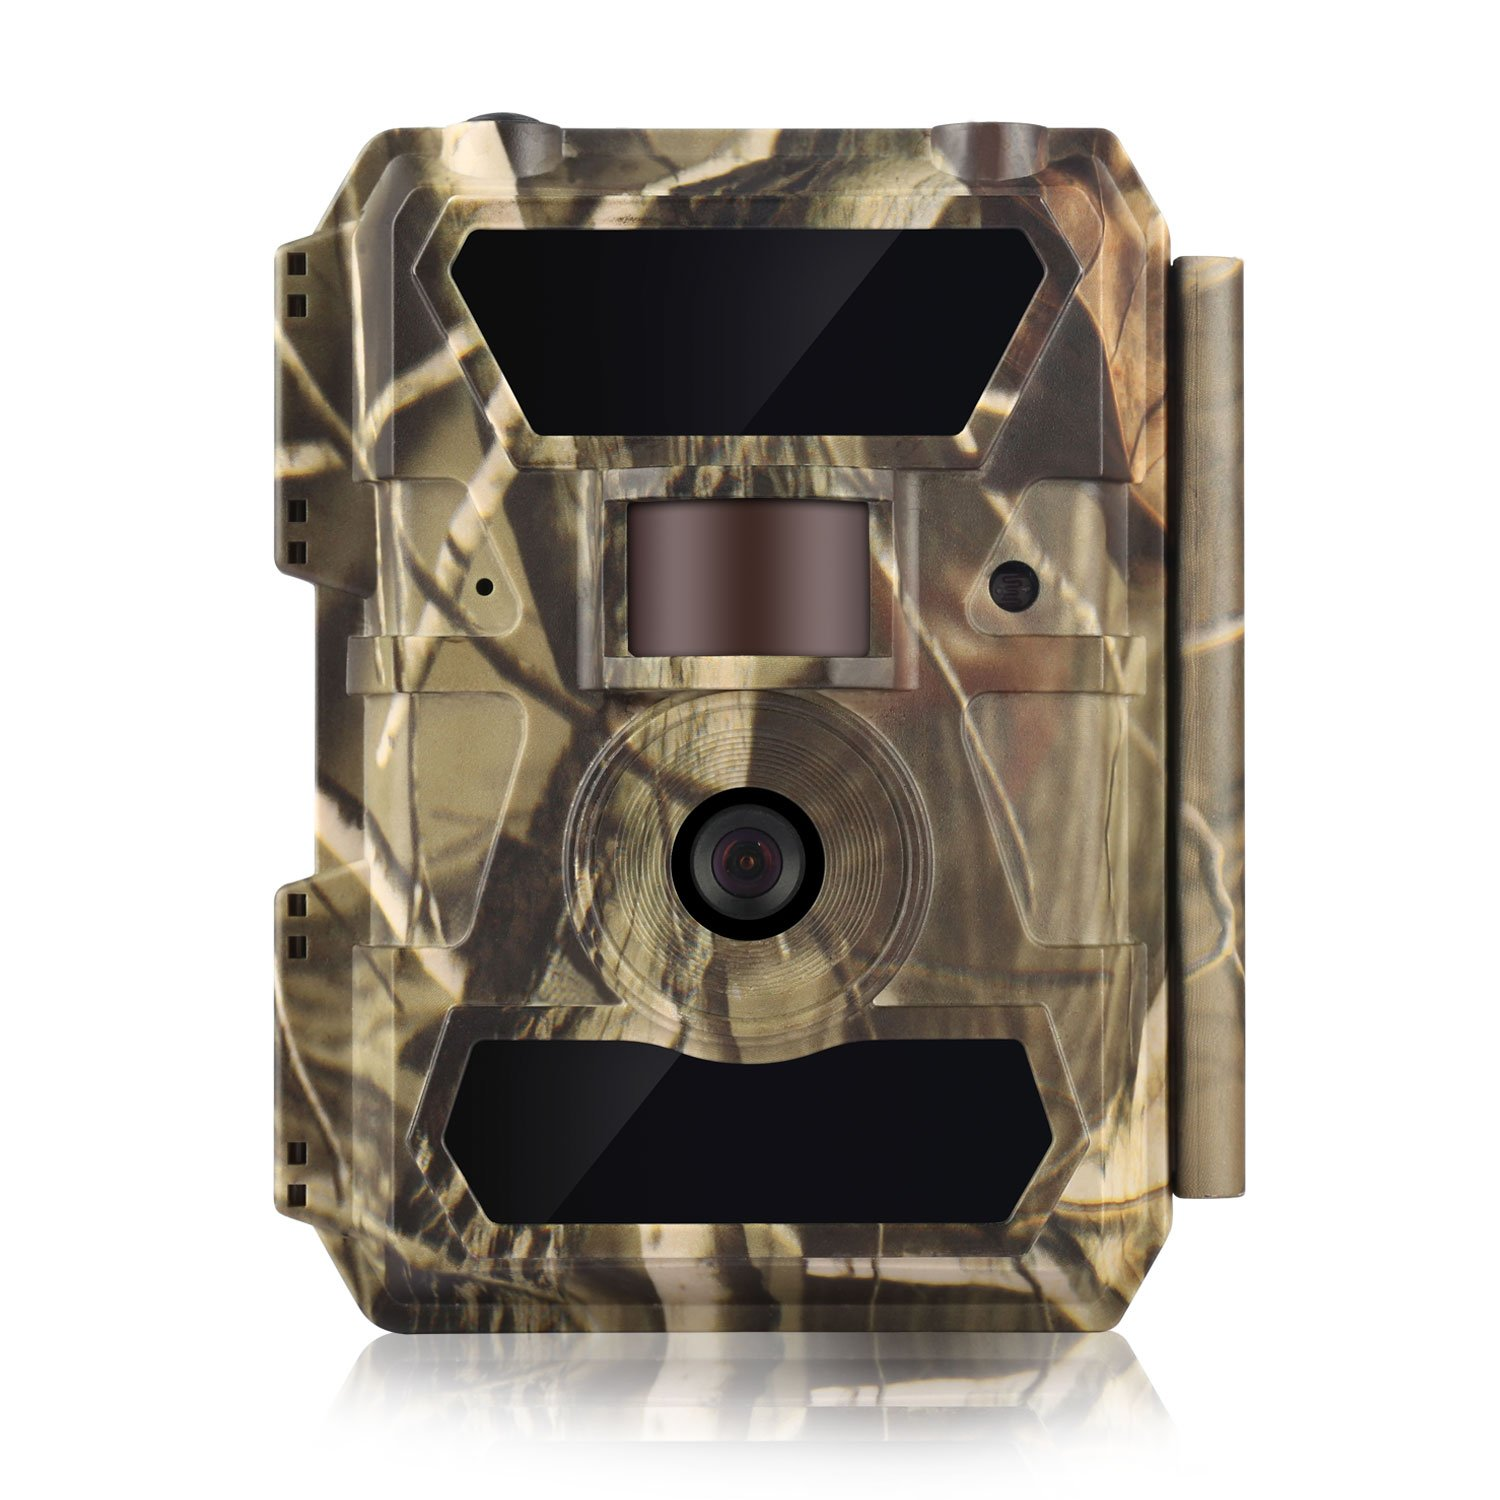 WingHome Trail Camera, 1080P 12M Game Cameras with Night Vision Waterproof HD Video Motion Activated Camera 58PCS Infrared No Flash Hunting Camera for Home Backyard Outdoor Wildlife Photograph